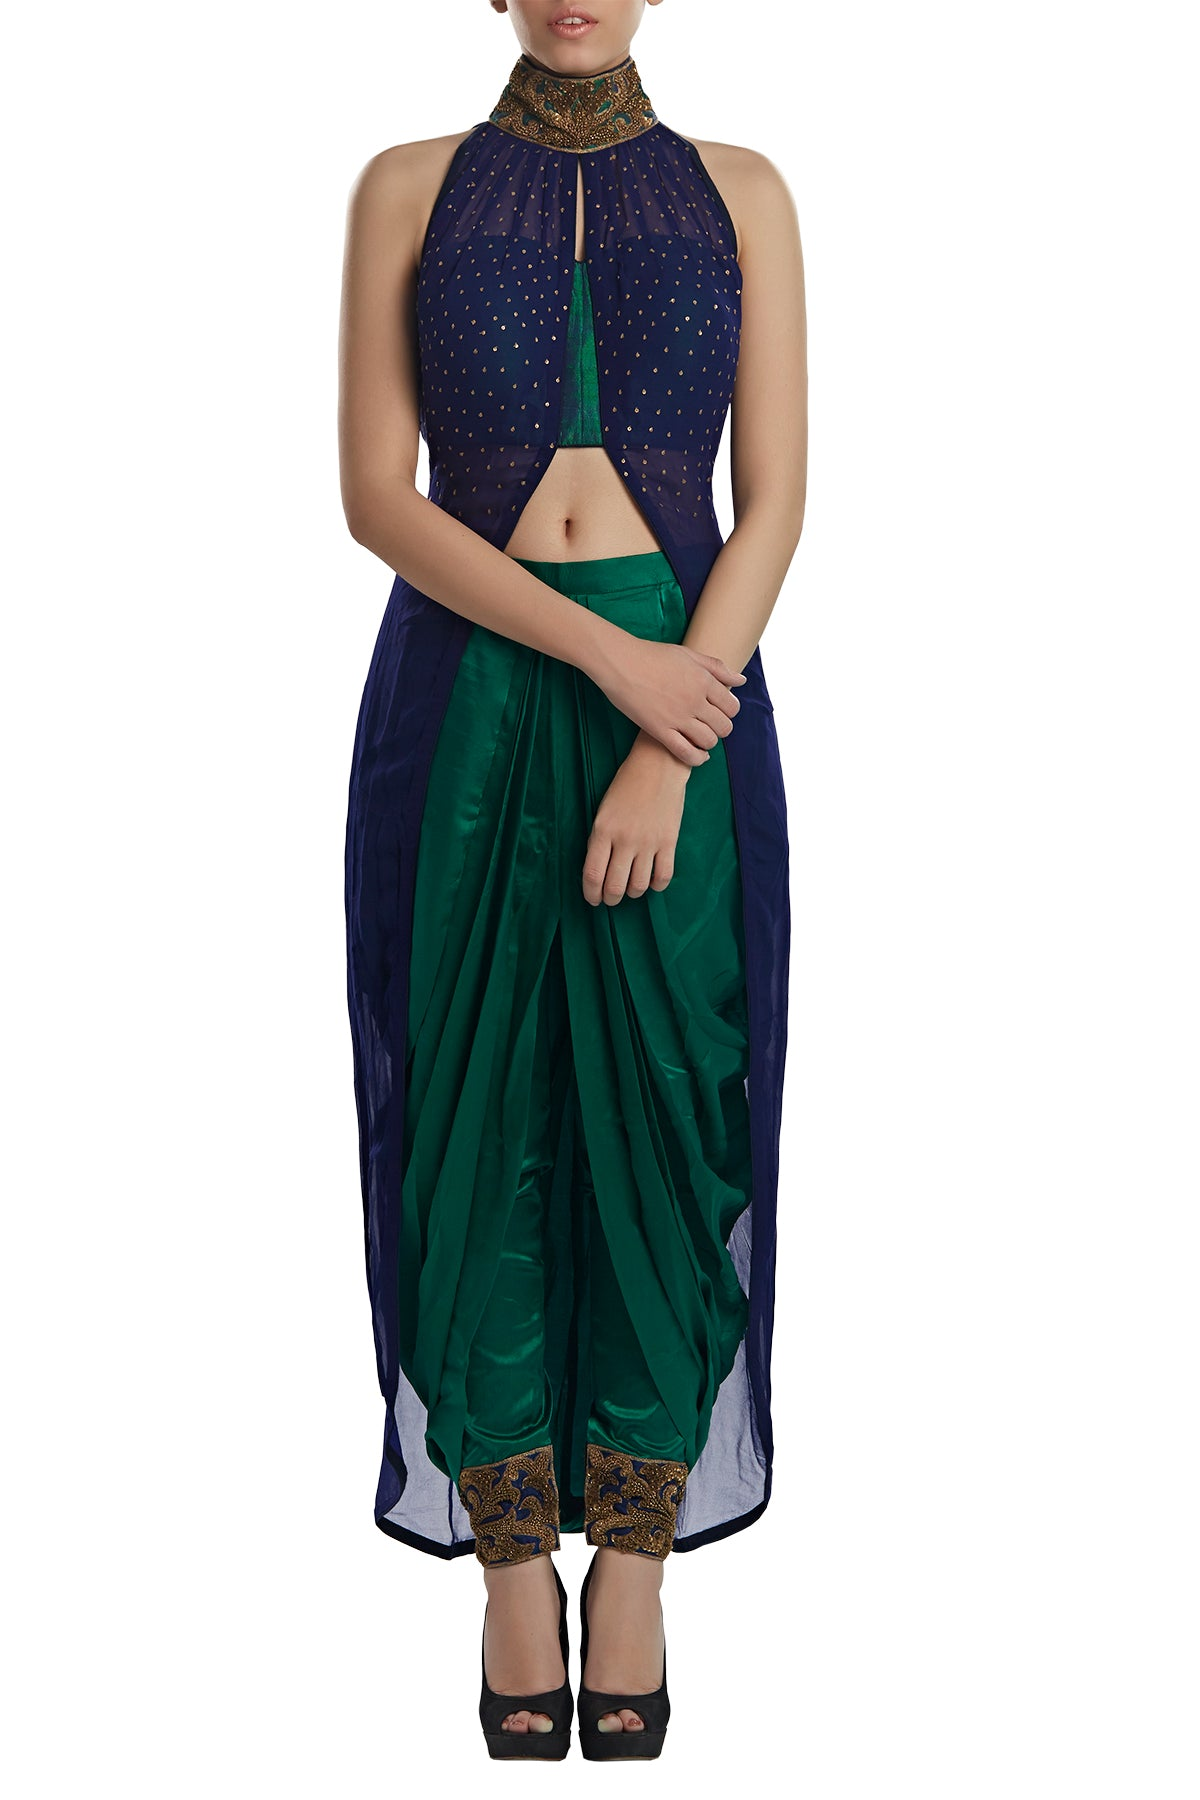 This one's a keeper and should creep into your every wedding suitcase! From welcome dinners to cocktails to evening mehendis when styled right, get your hands on our blue georgette high neck top with satin draped dhoti pants.